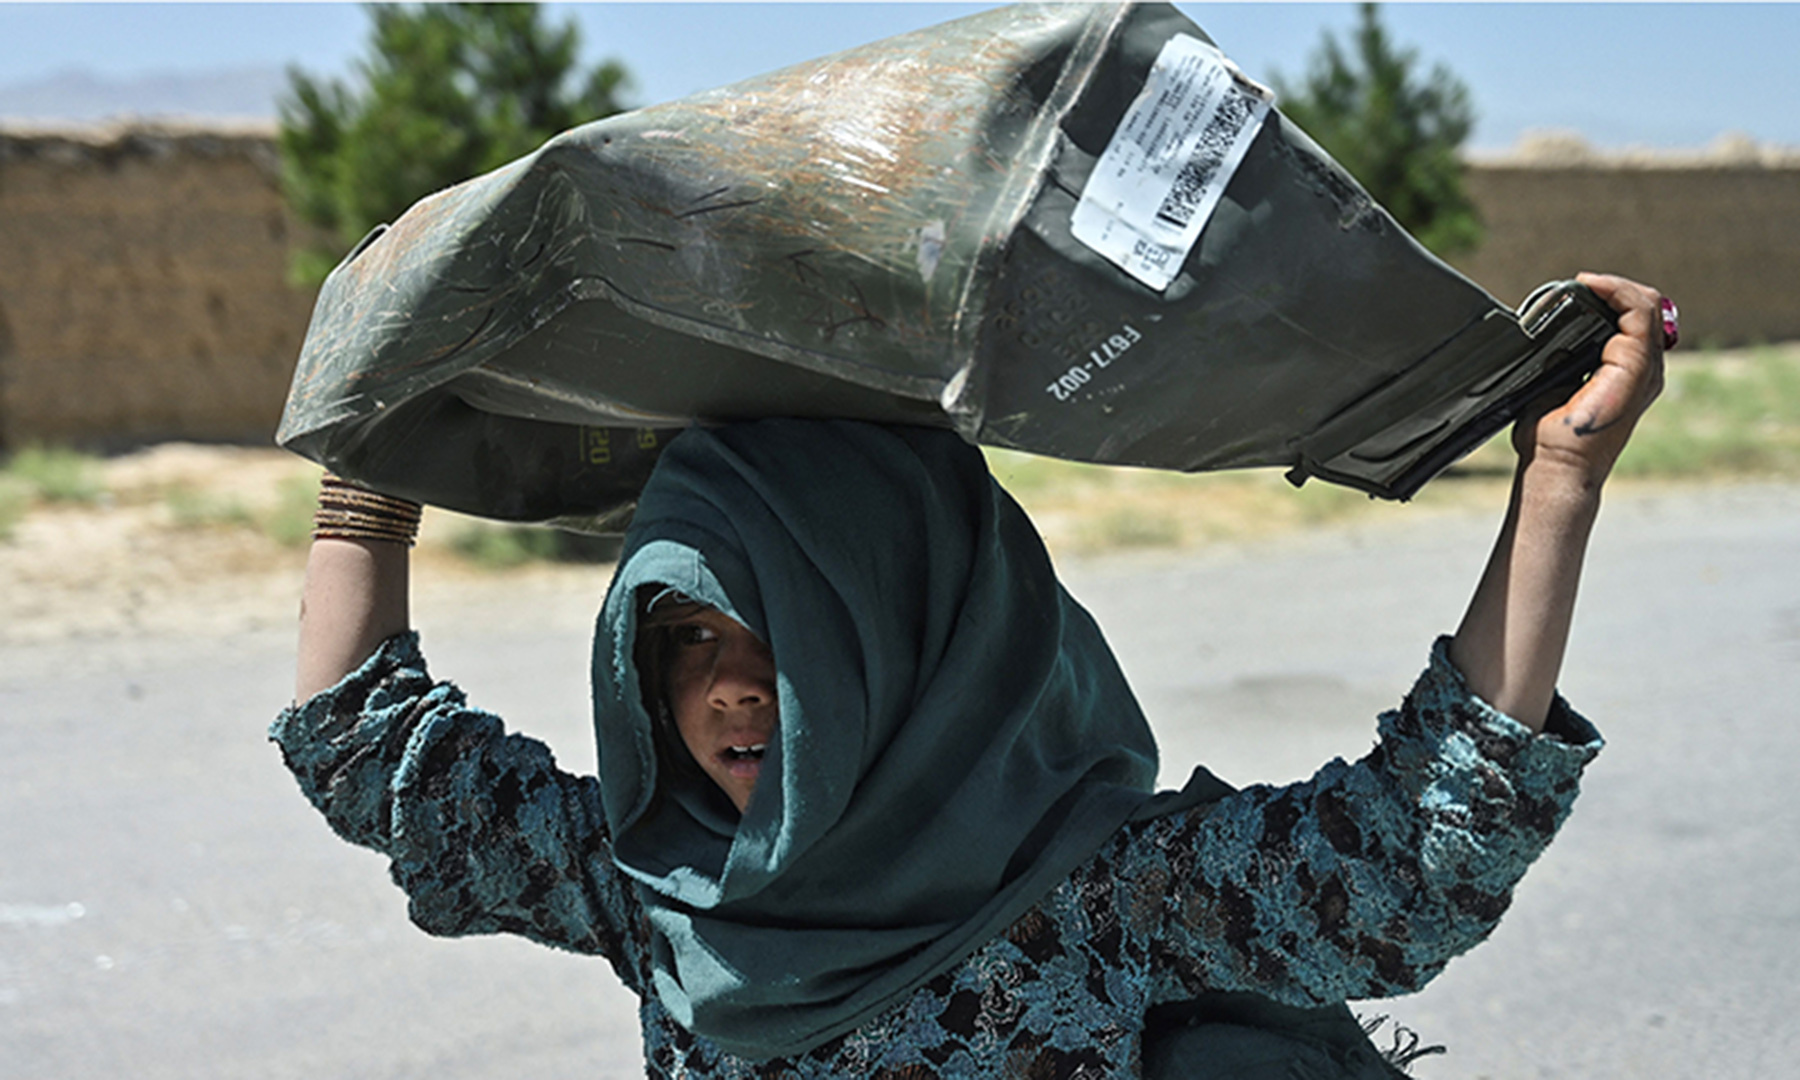 A girl carries a metal box she collected from a junkyard near the Bagram Airbase in Bagram. — AFP